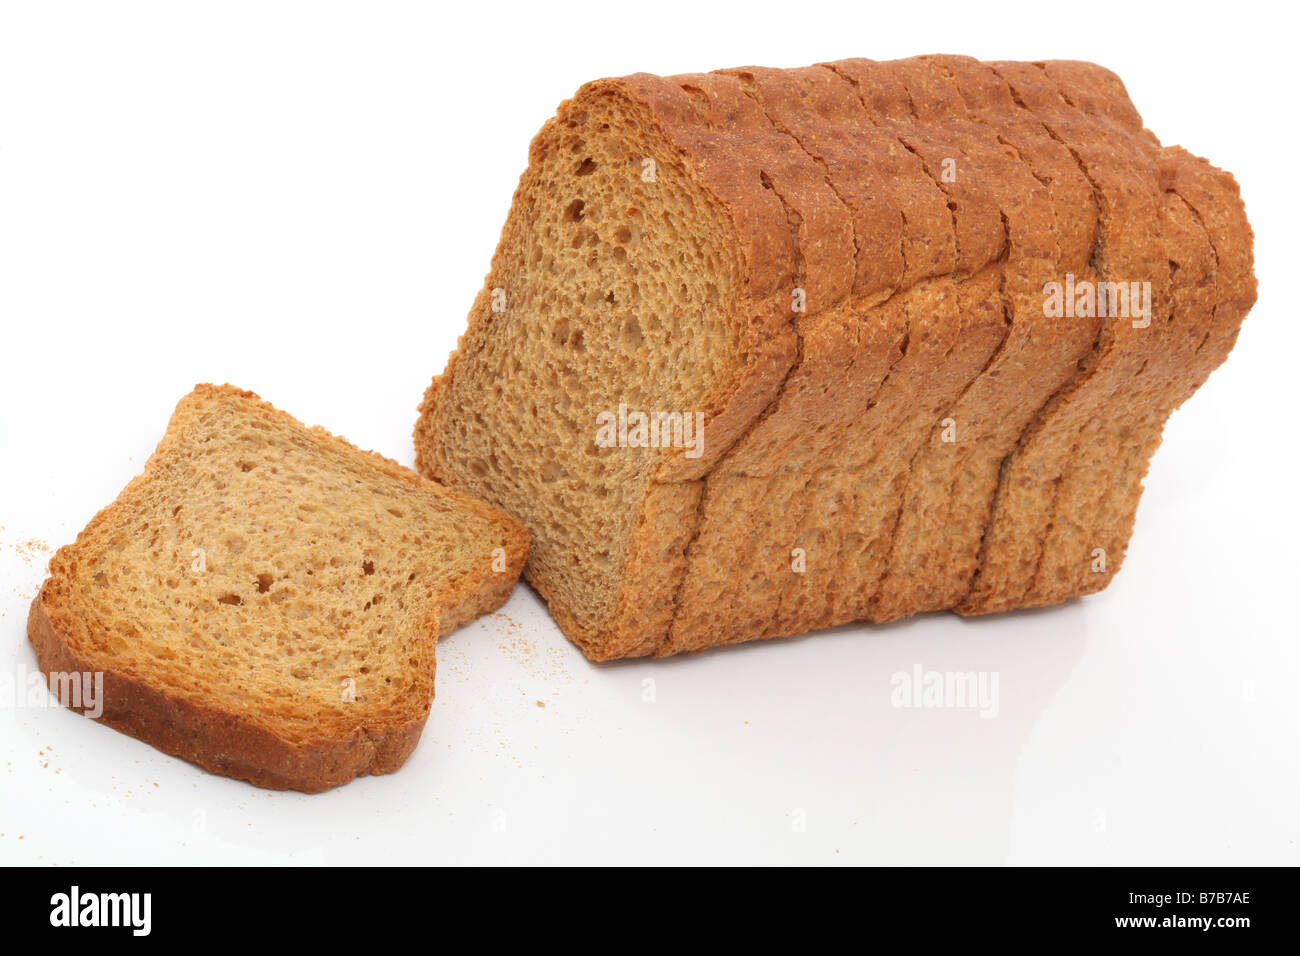 dry toasted bread loaf in slices isolated on white background - Stock Image